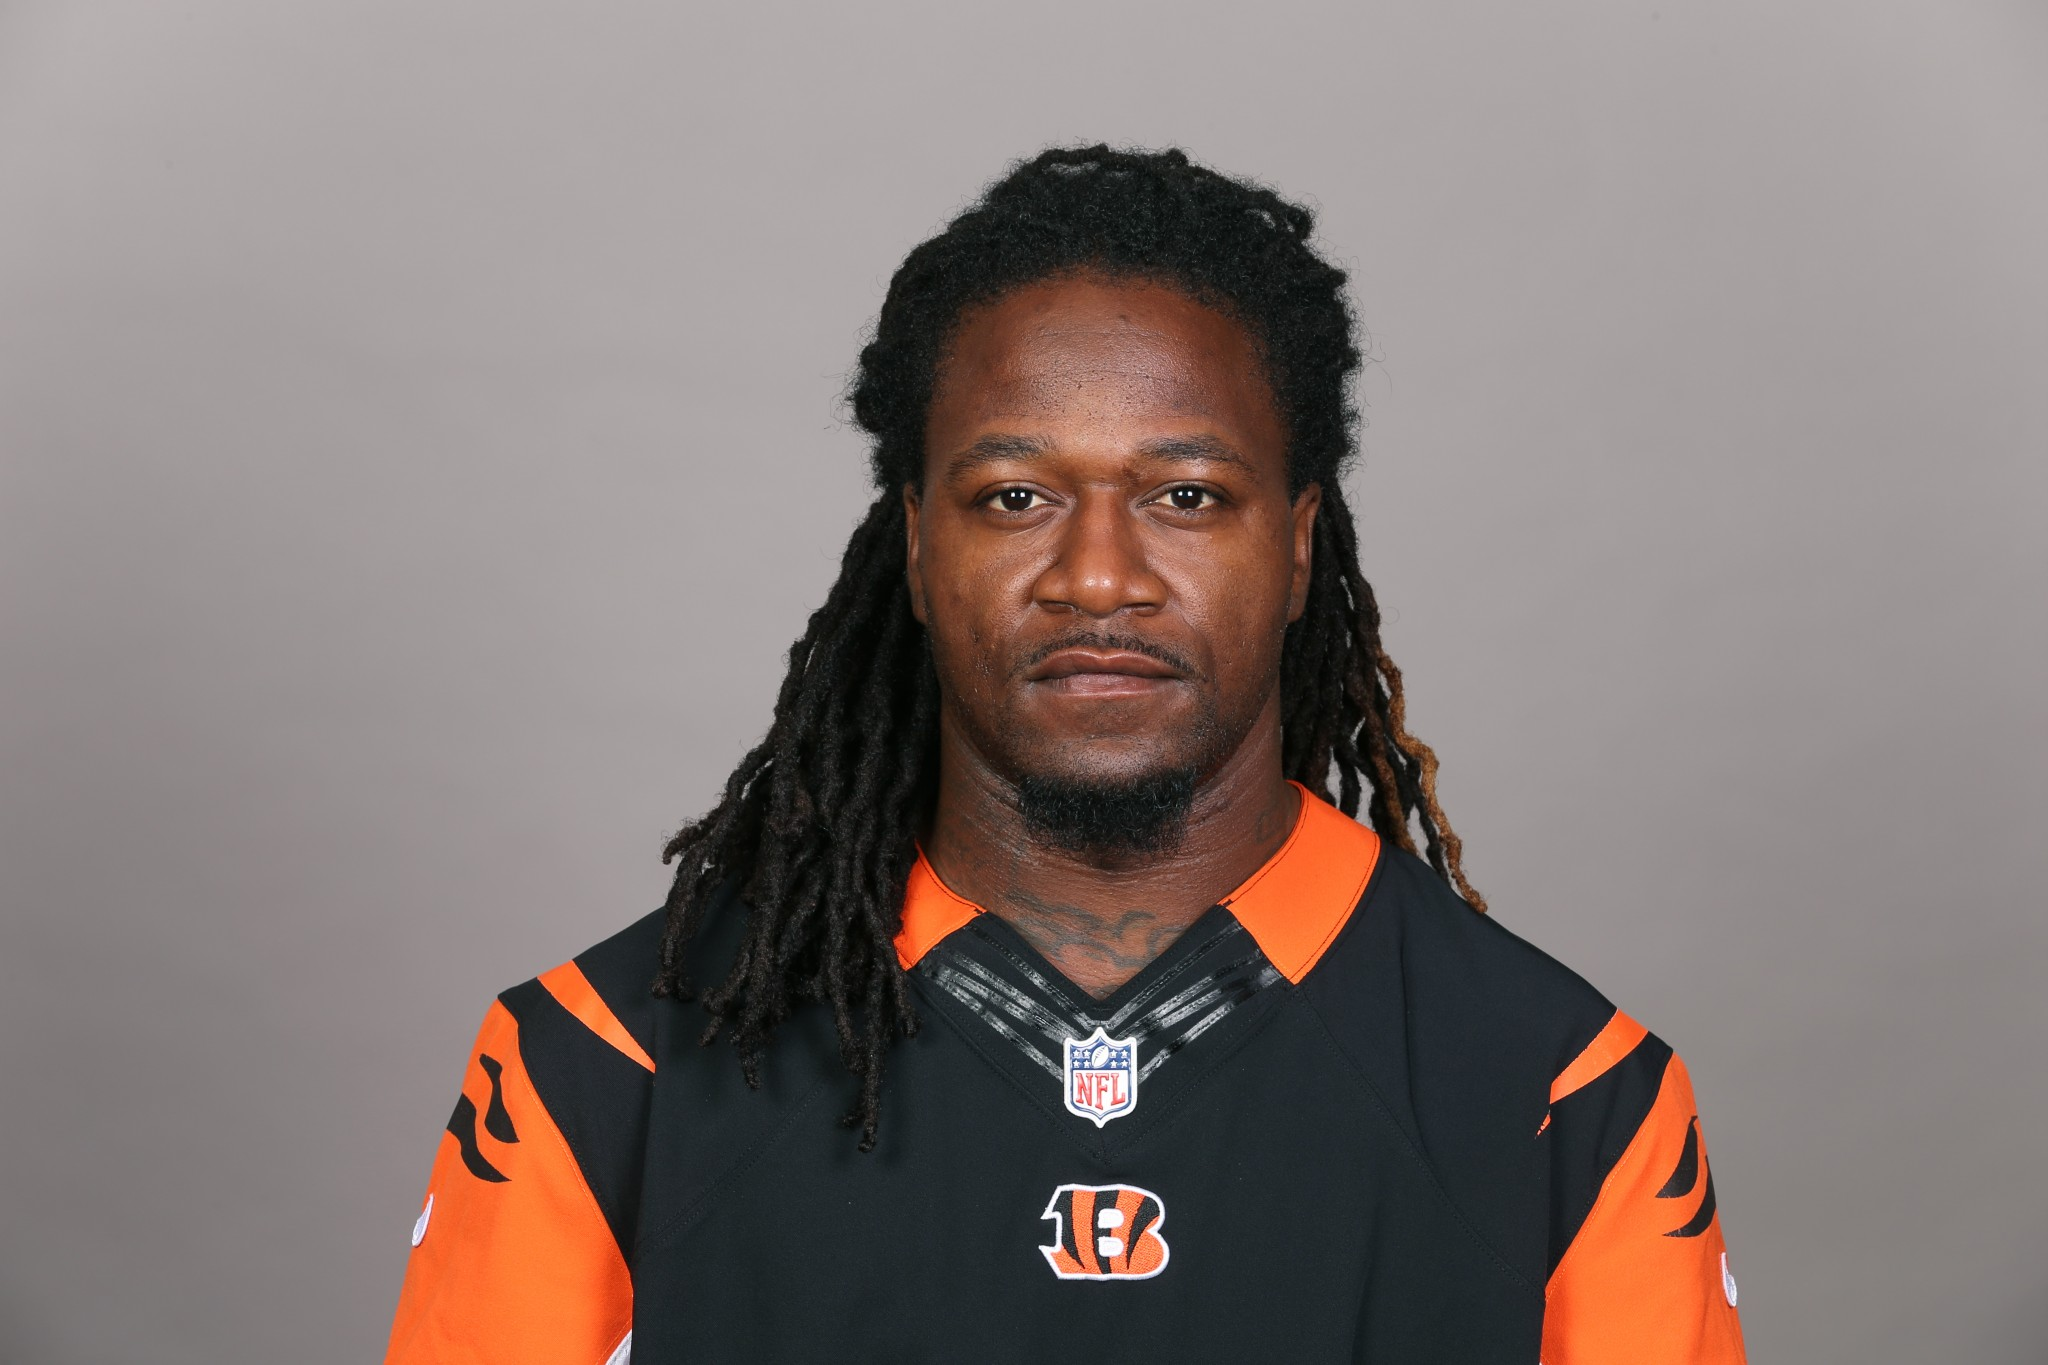 Bengals Adam 'Pacman' Jones receives one-game suspension for violating personal conduct policy